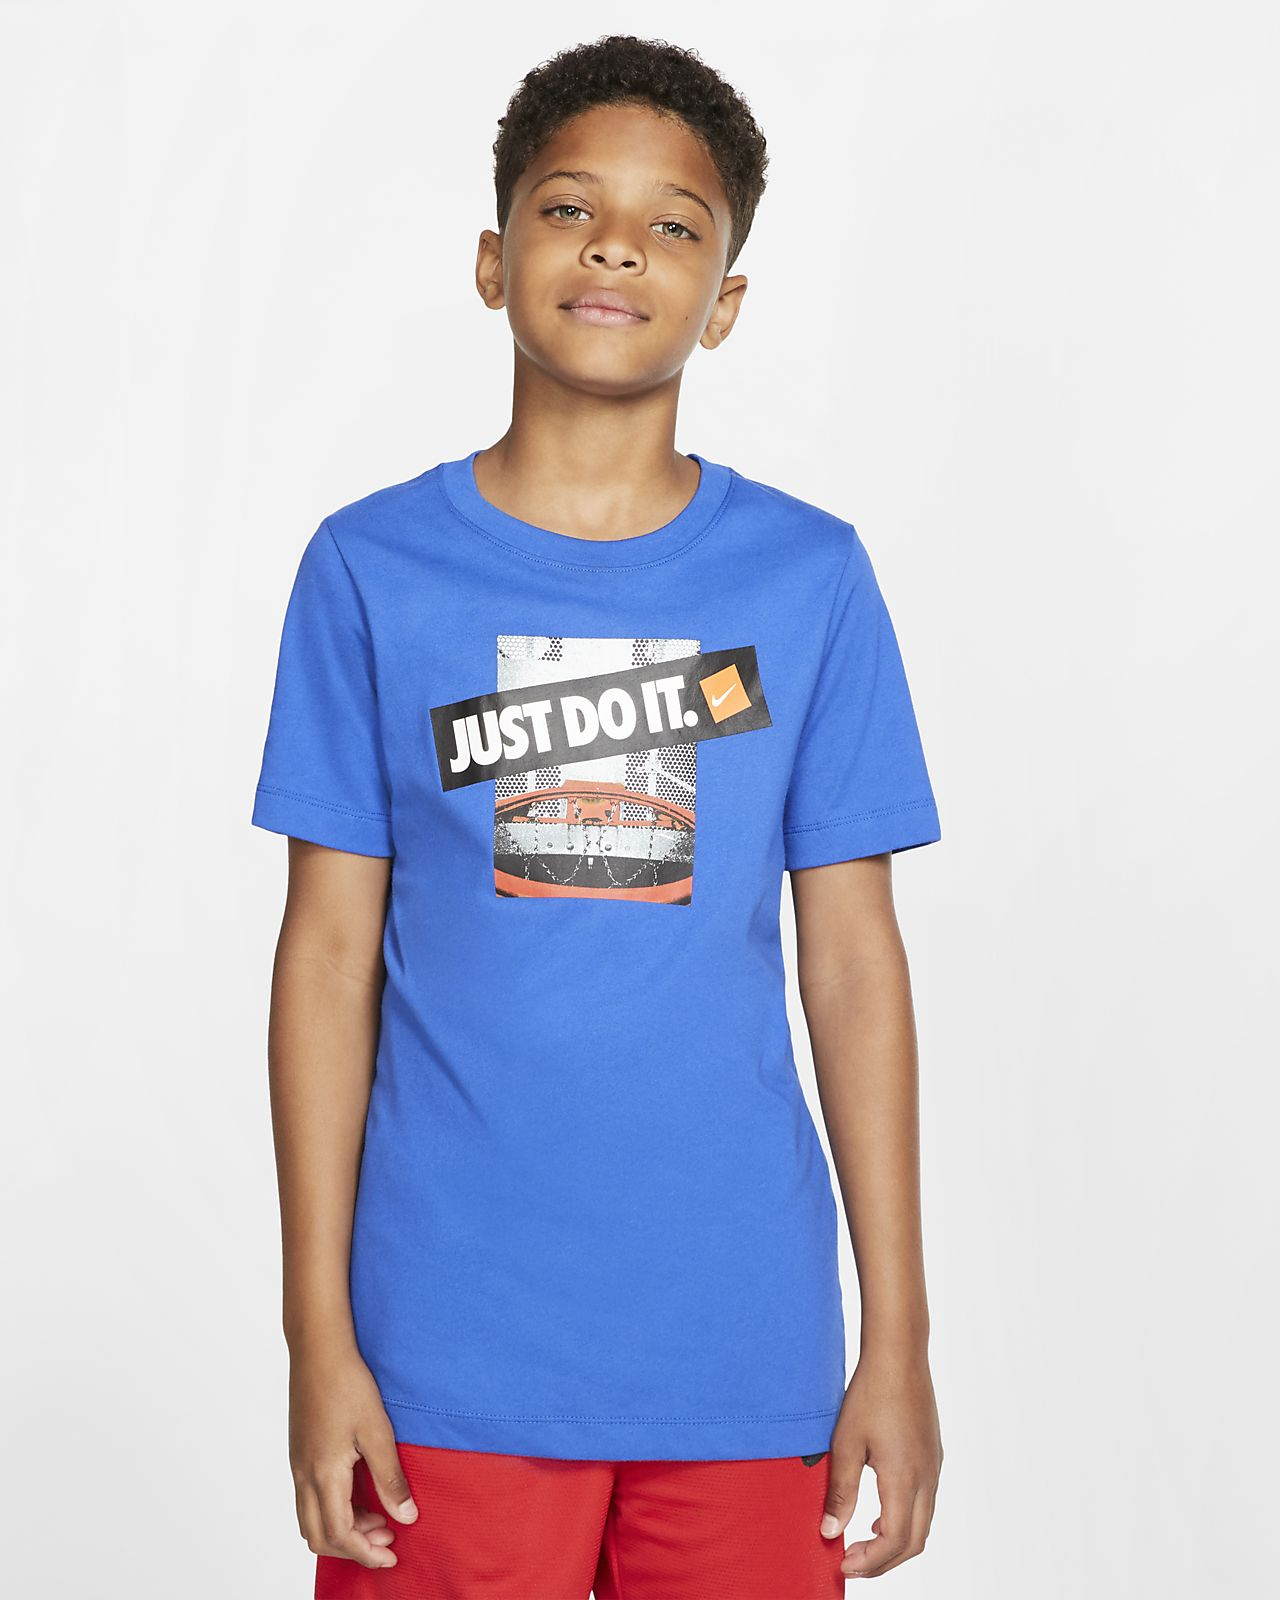 Nike Dri-FIT Older Kids' Basketball T-Shirt